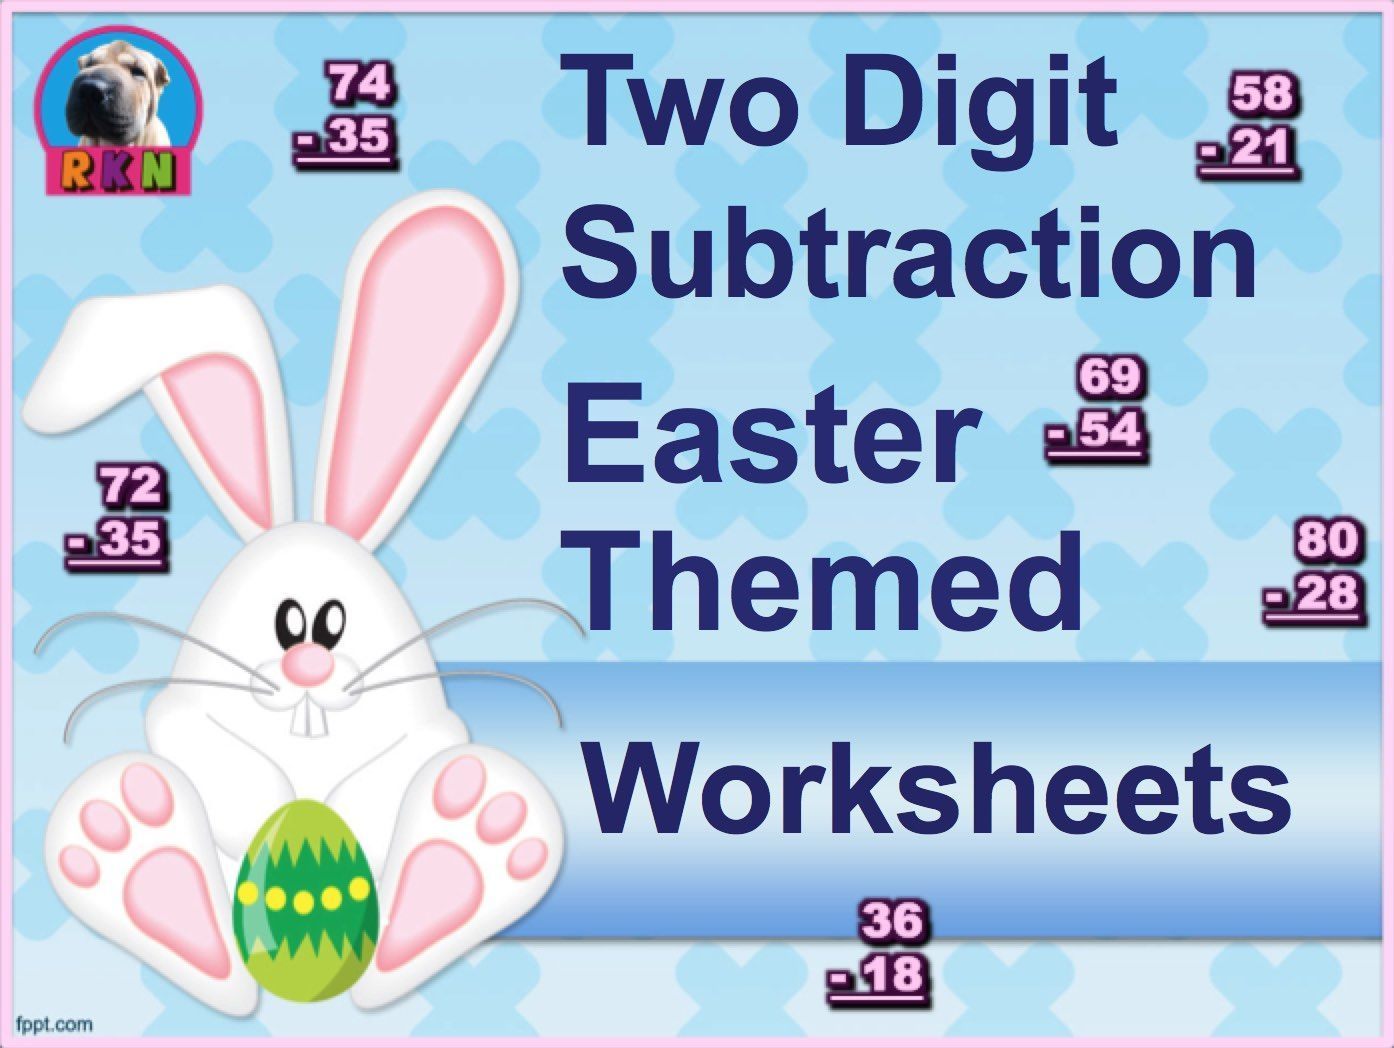 Two Digit Subtraction Worksheets - Easter Themed - Vertical | Power ...